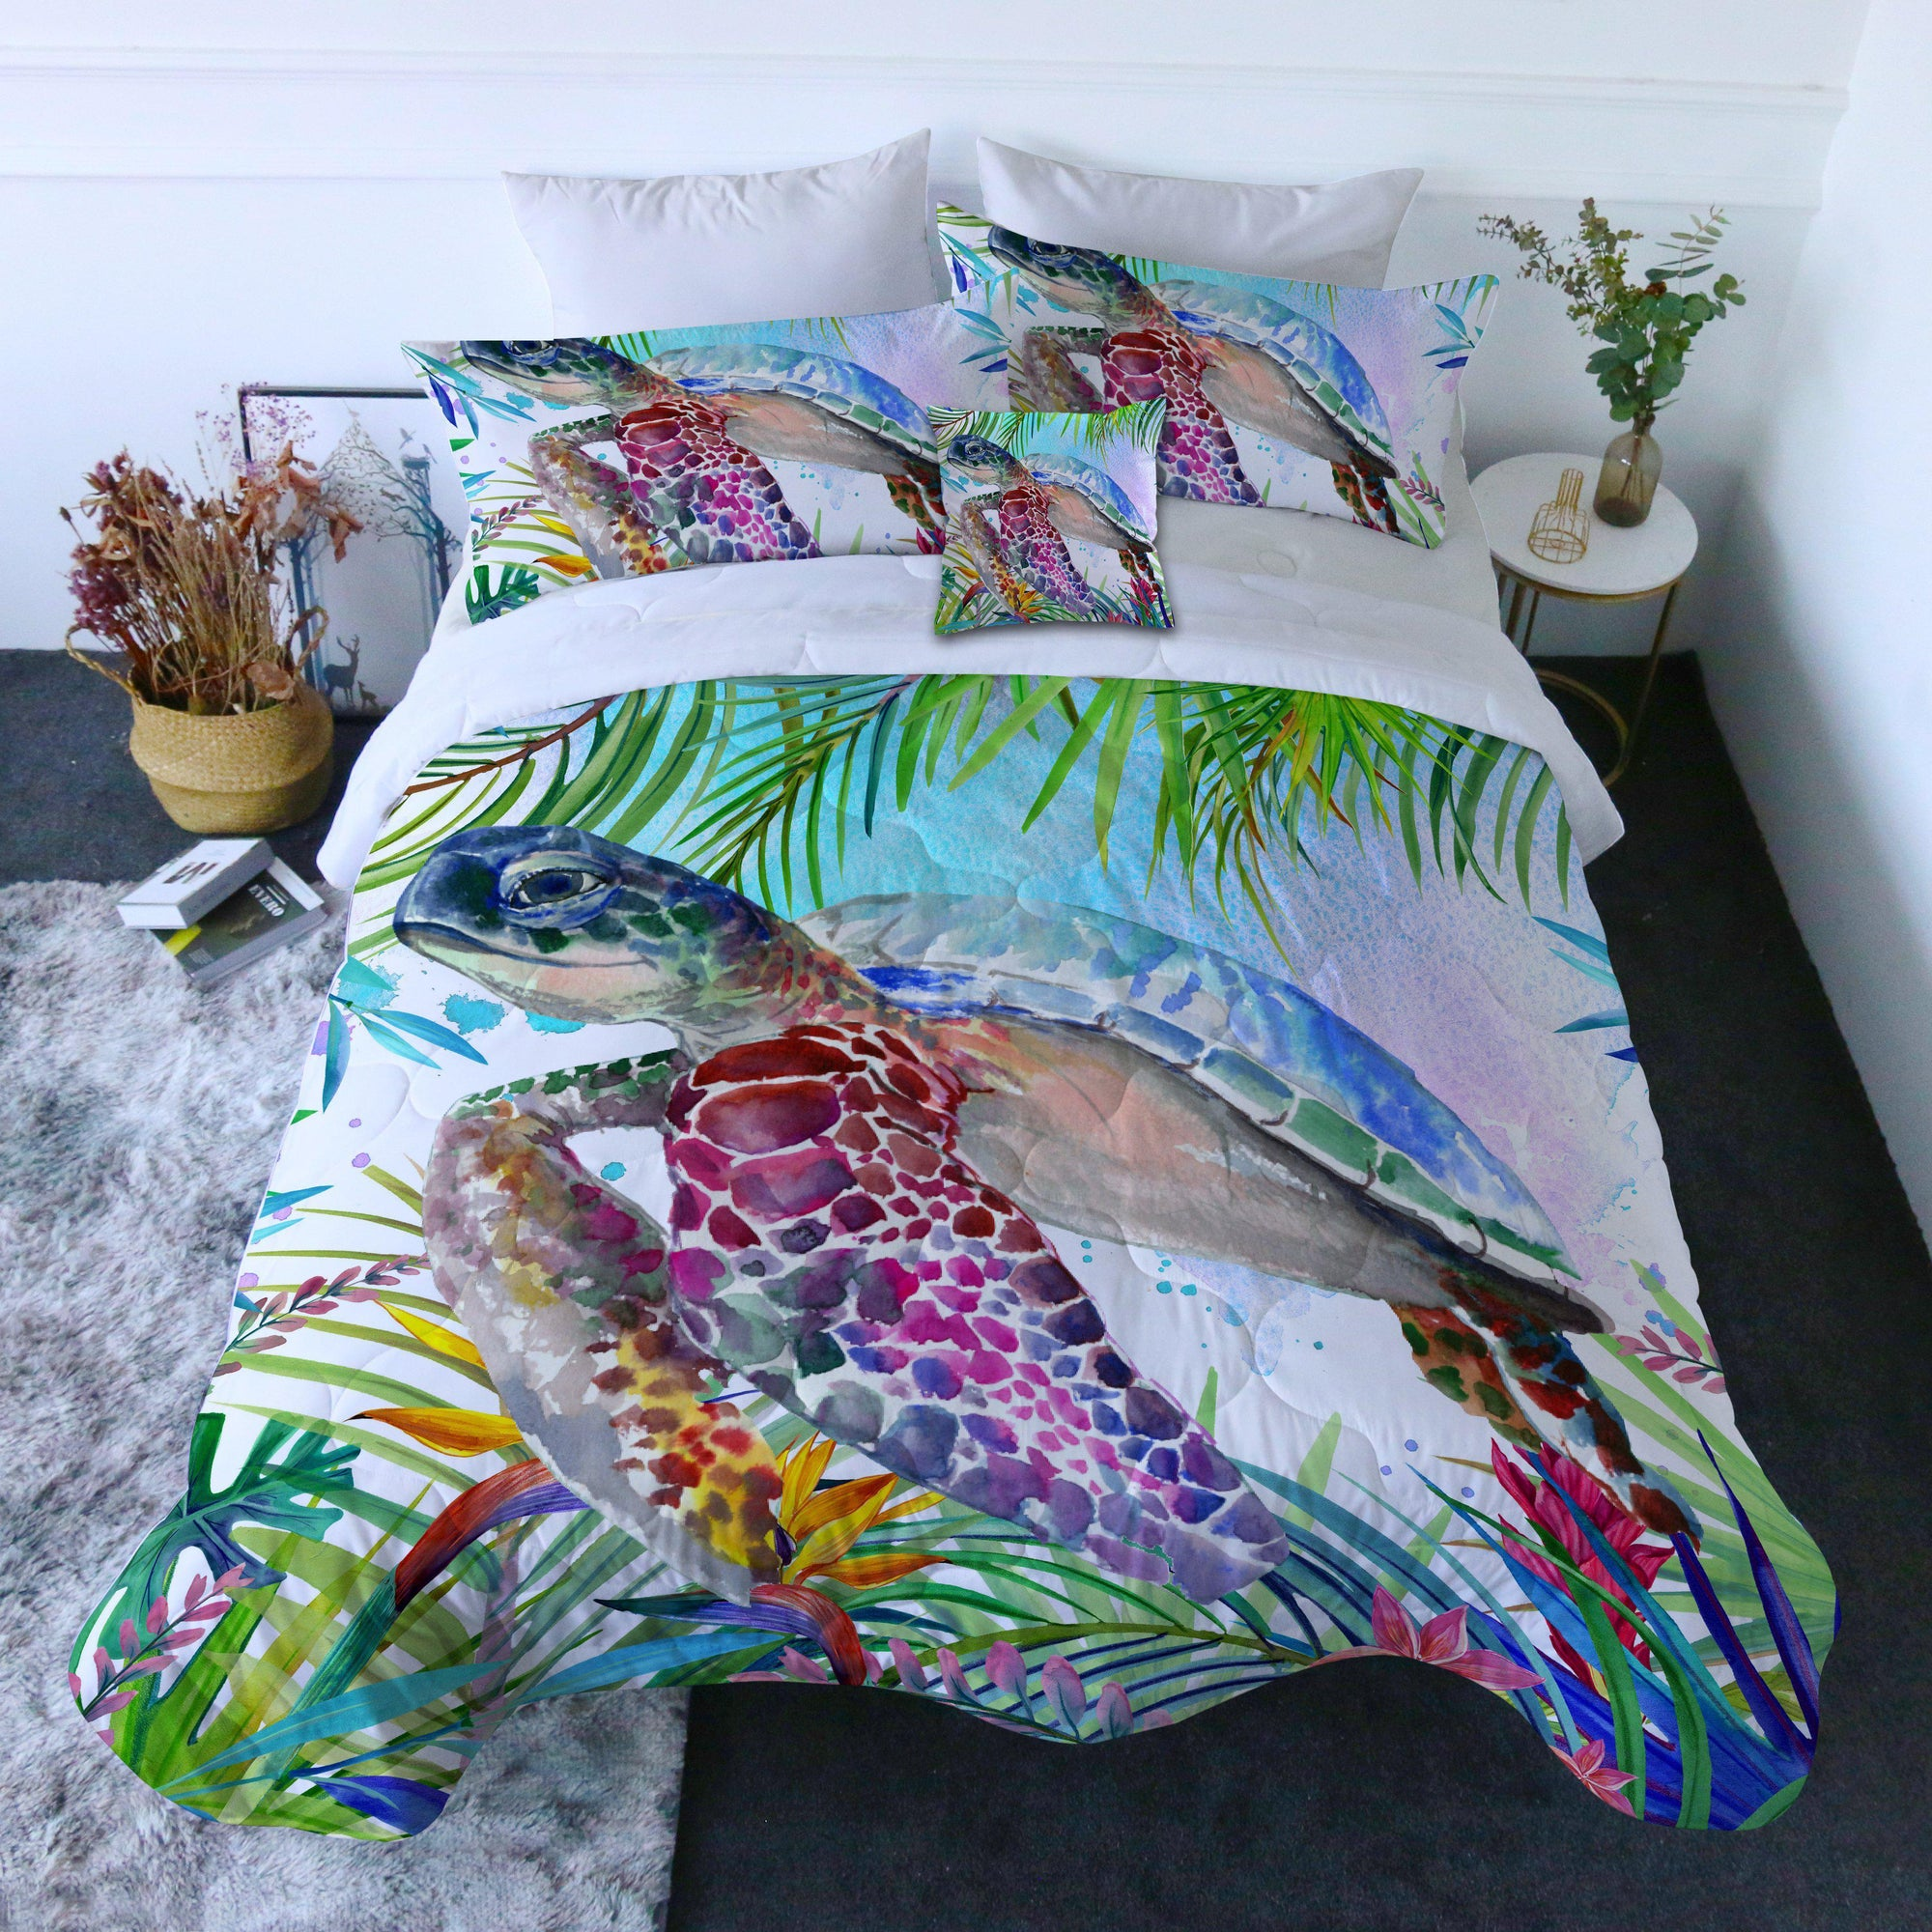 Duvet Comforter Bedding Set-The Tropical Sea Turtle Quilt Set-Coastal Passion